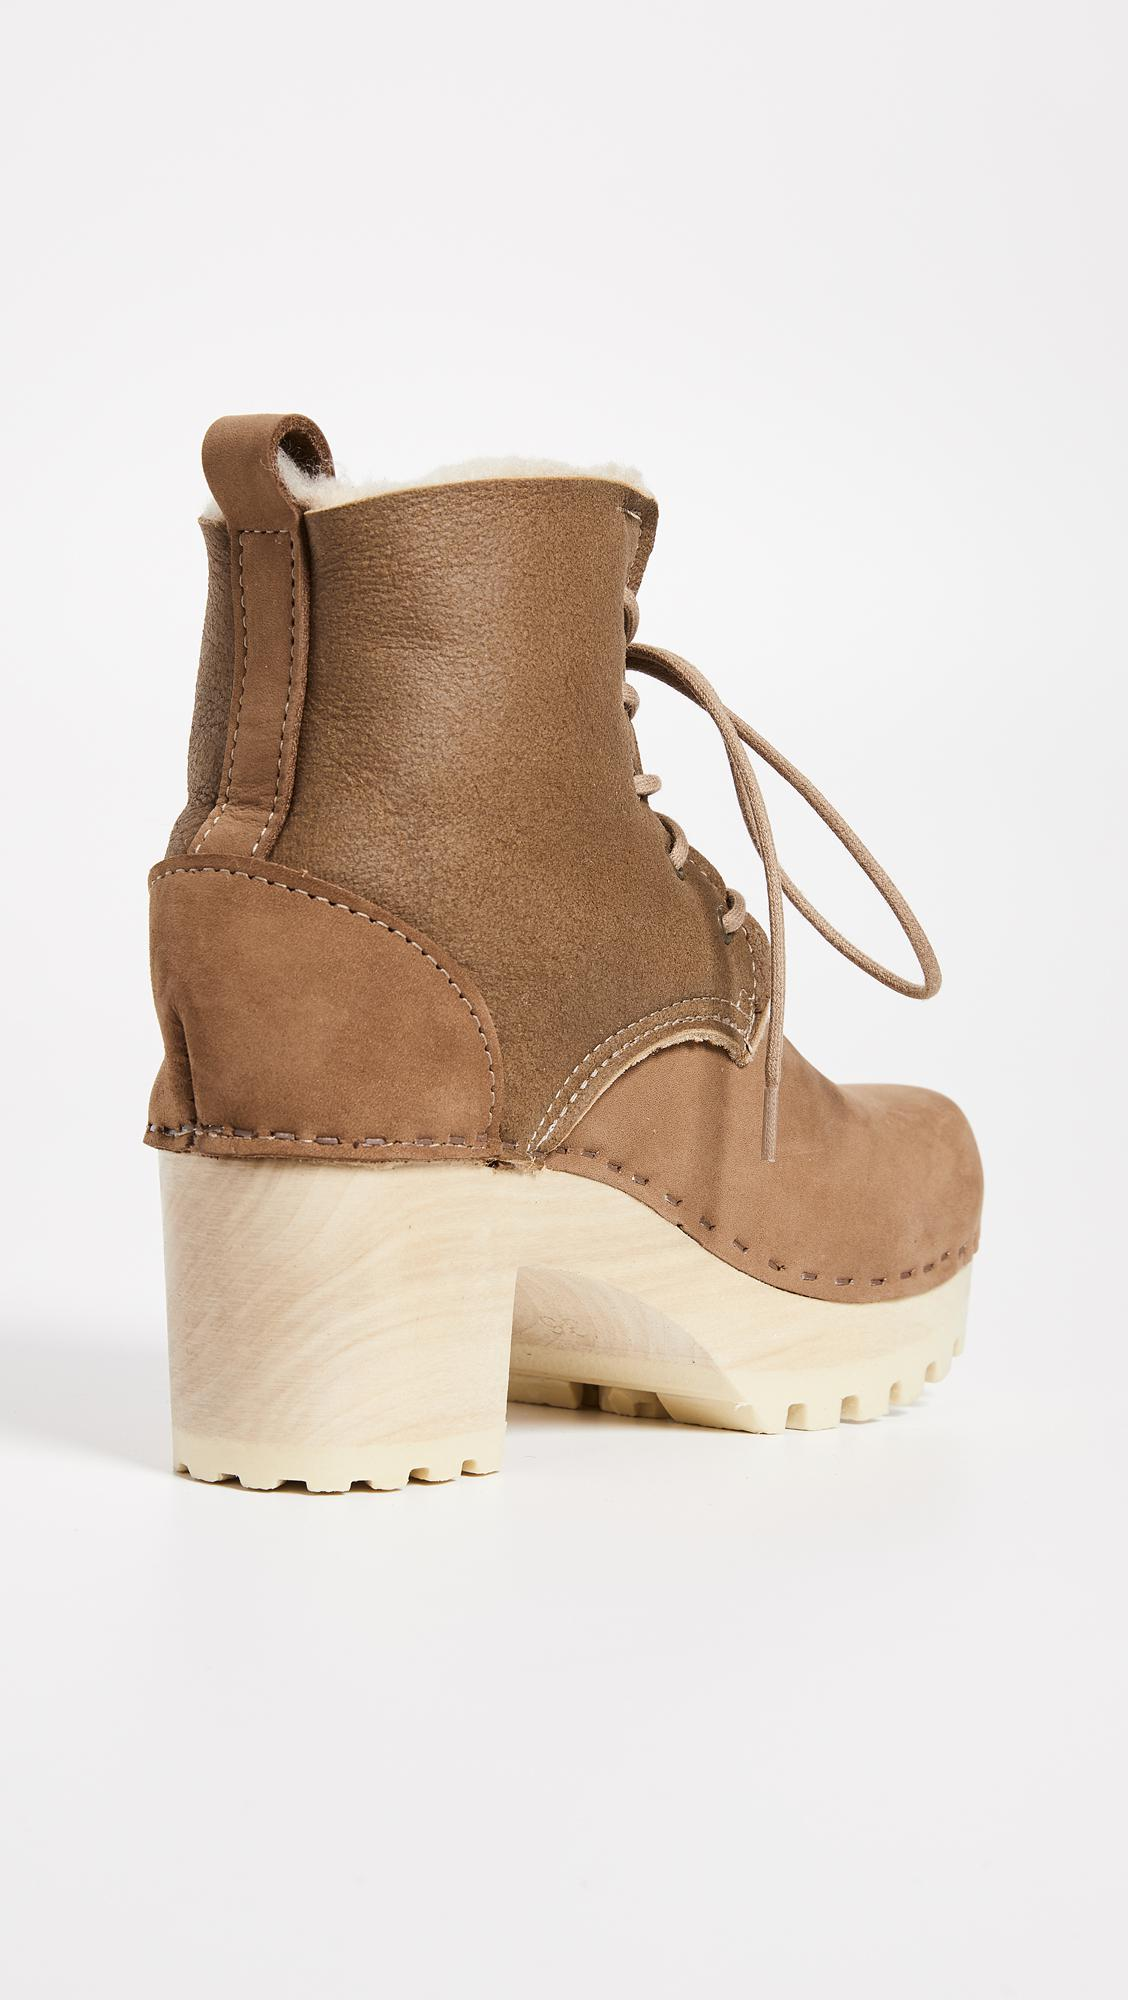 No. 6 Leather Lander Lace Up Shearling Boots